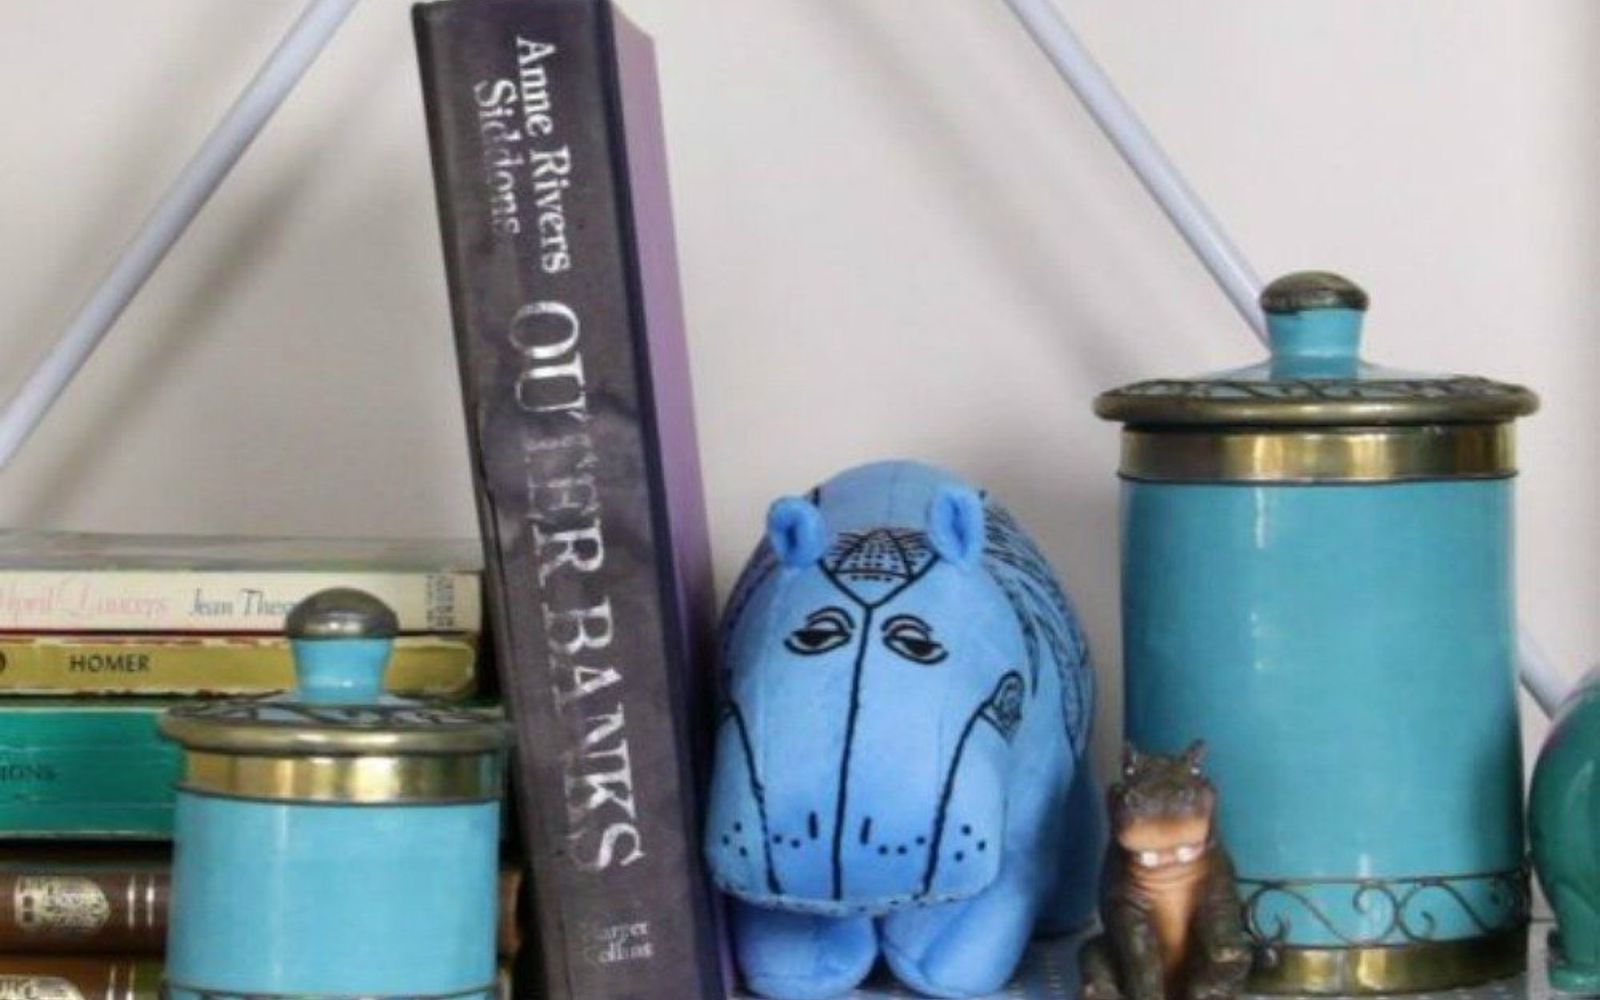 s hide your home s eyesores with these 11 brilliant ideas, home decor, The fix an old book cover